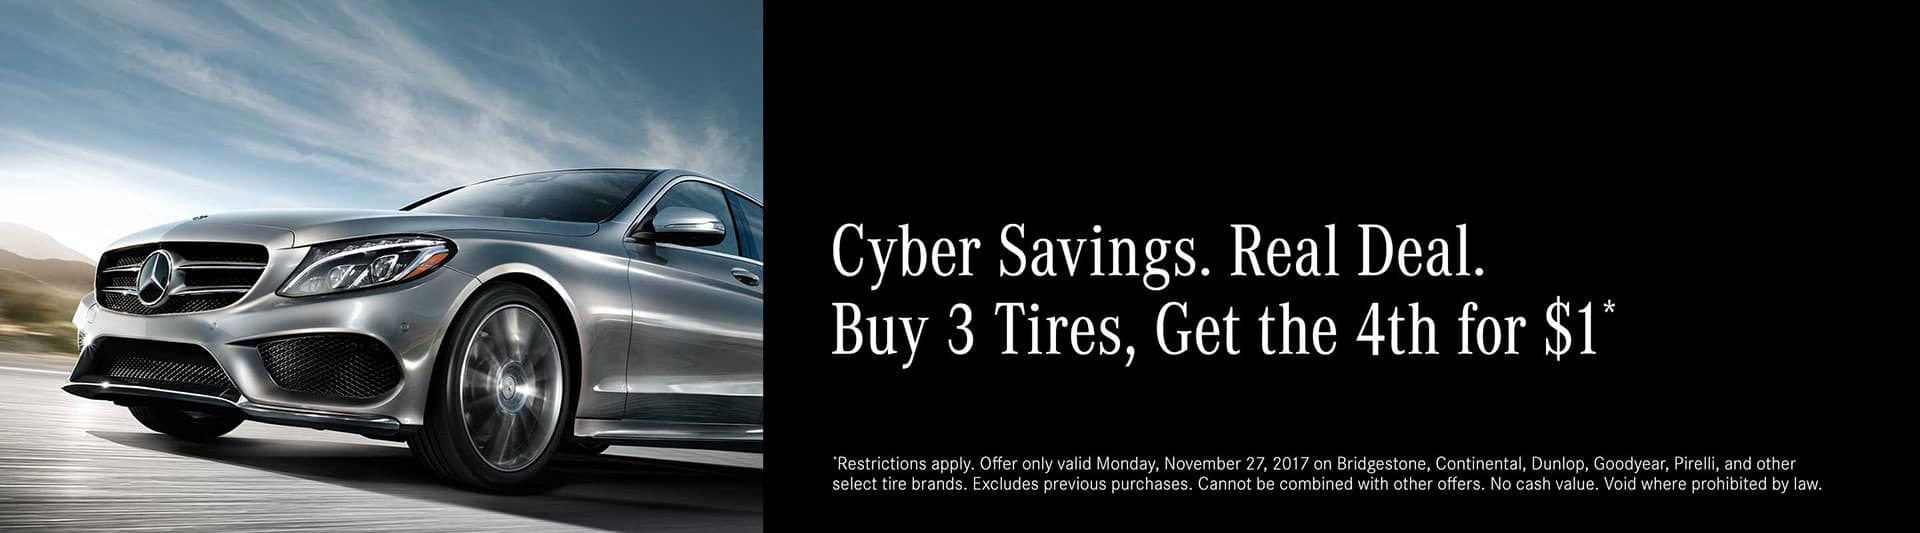 Auto service specials mercedes benz of laguna niguel for Service coupons for mercedes benz